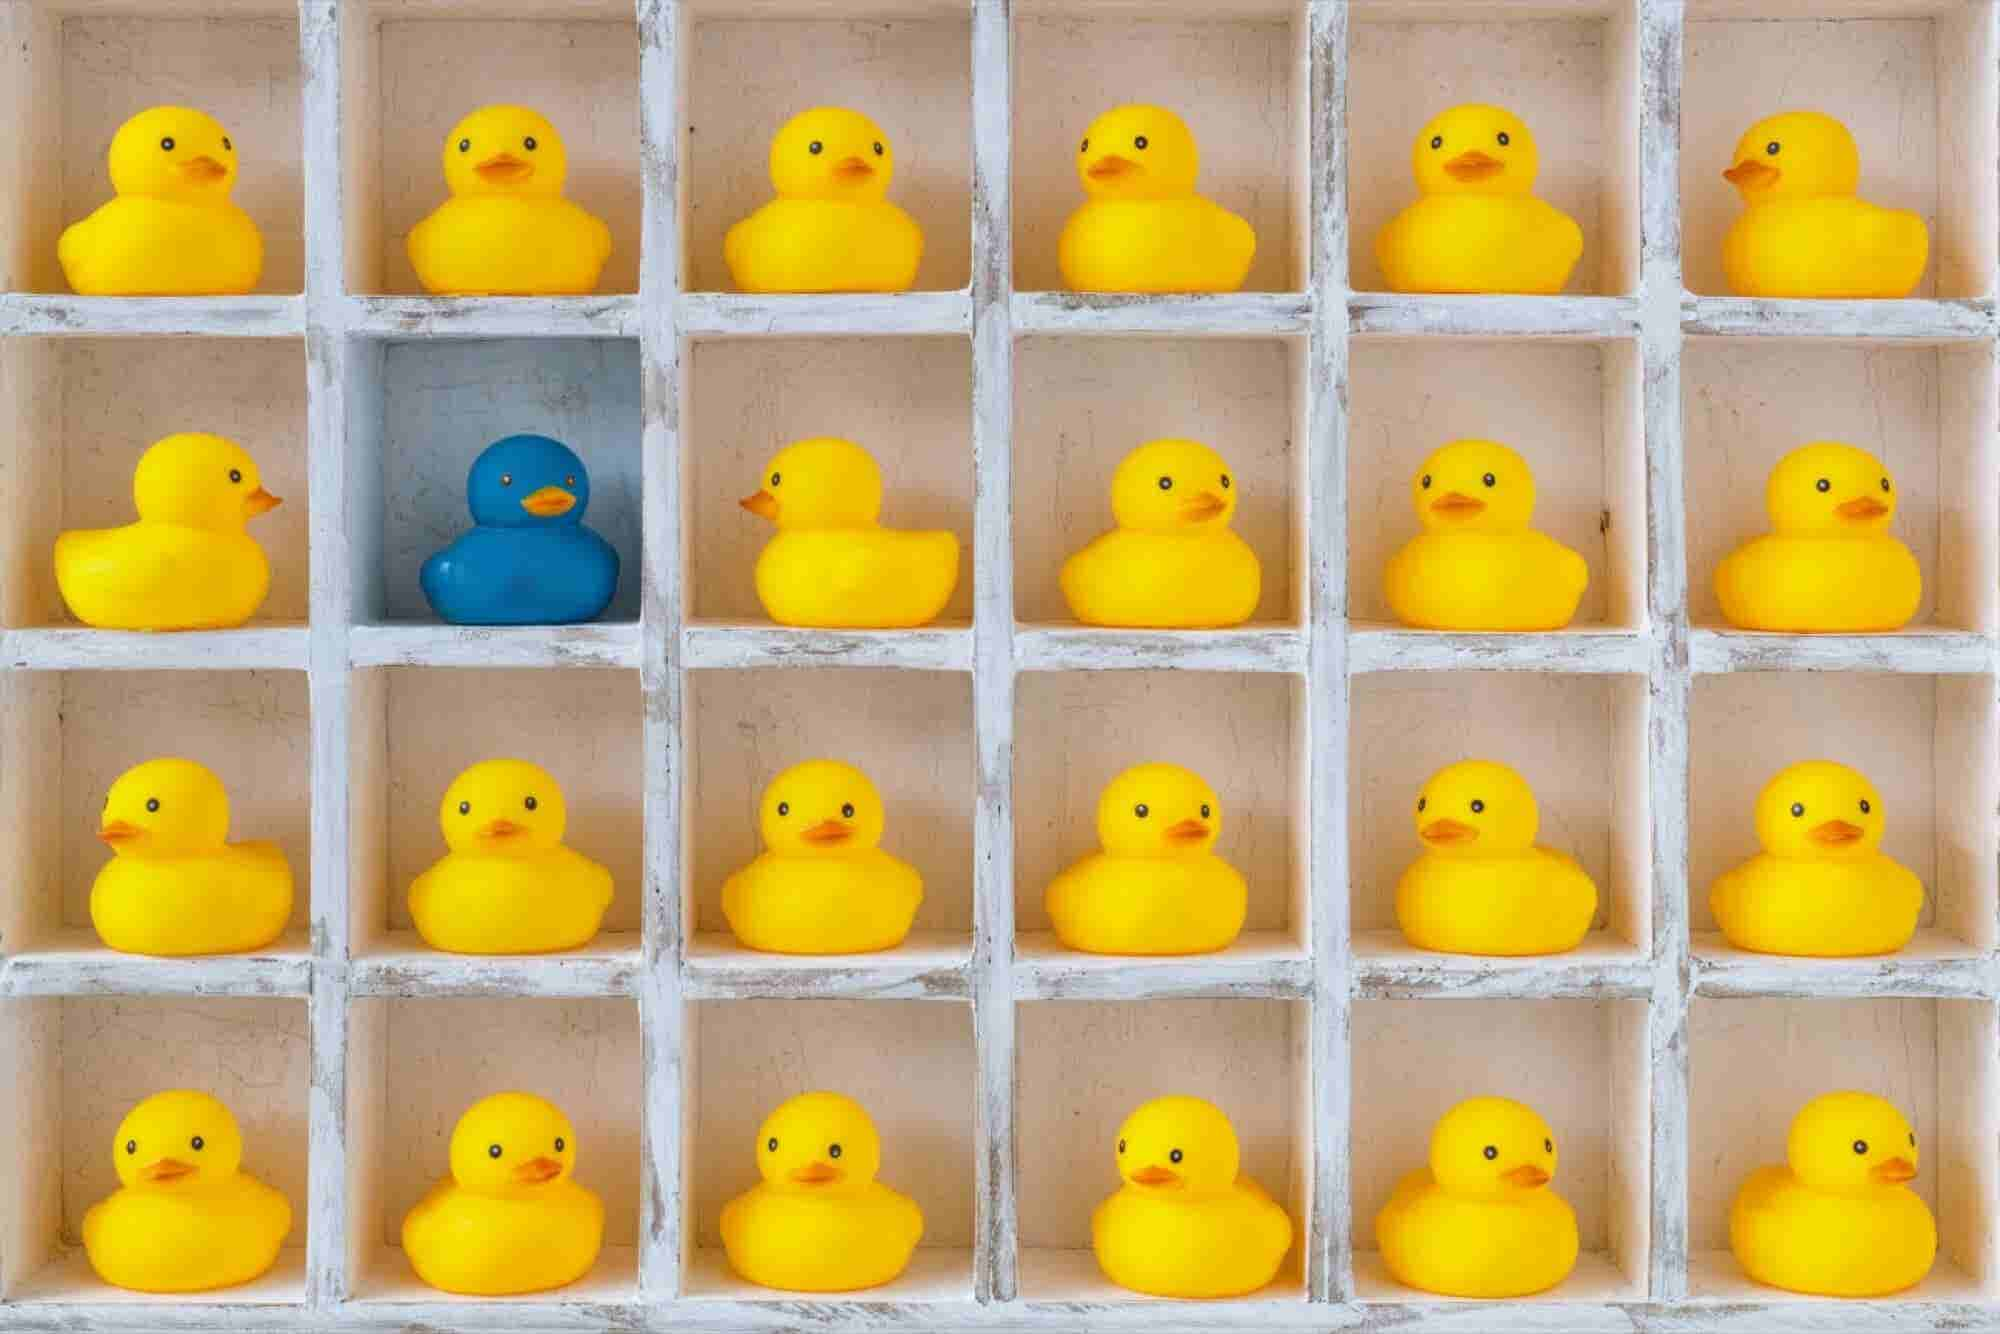 Fixating On How You're Different Can Hurt Your Marketing